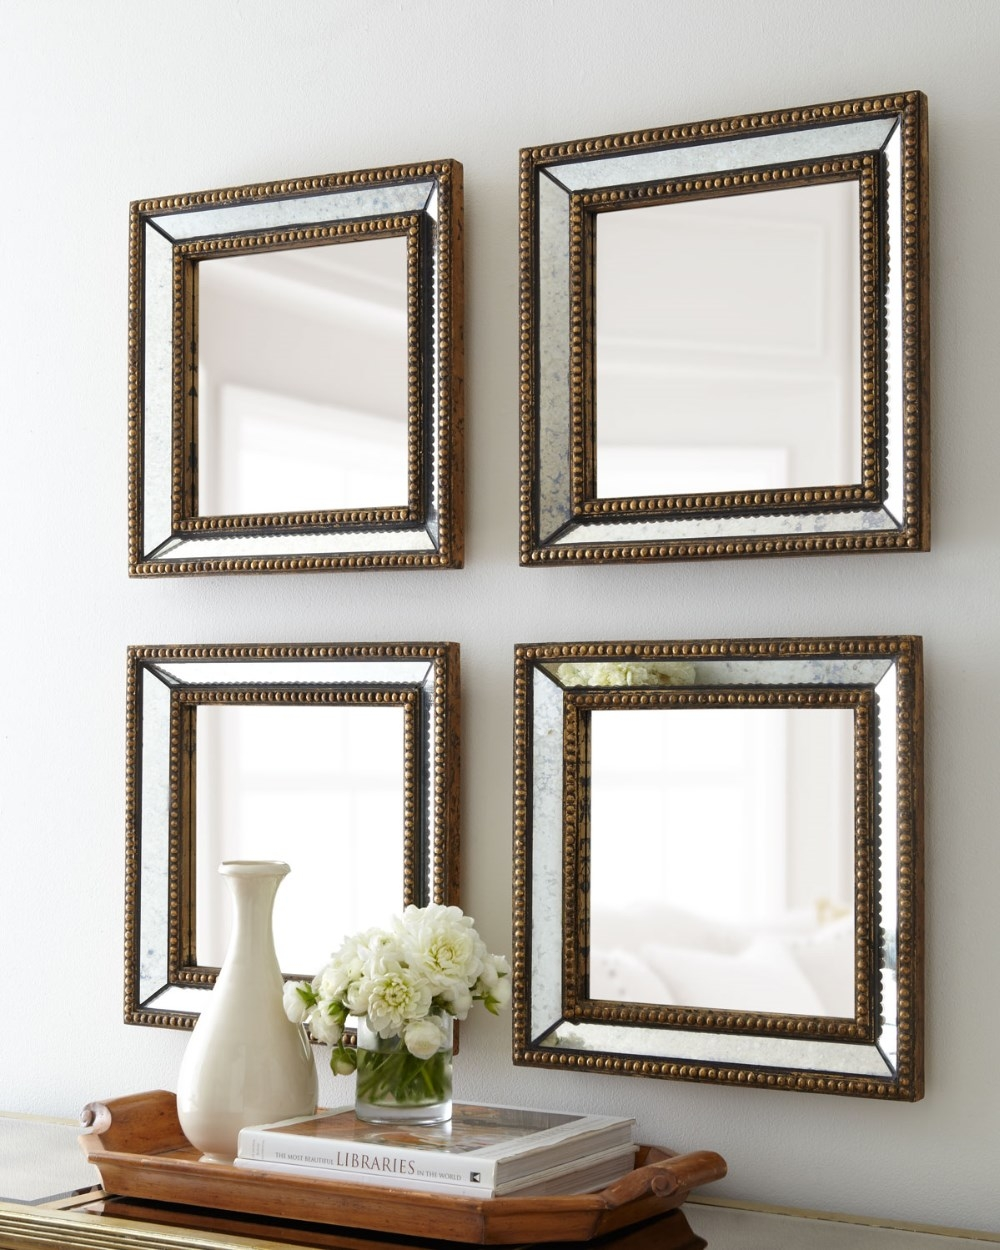 Beaded Square Home Decor Wall Mirror View Mirror Guanding Inside Venetian Beaded Mirrors (Image 3 of 15)